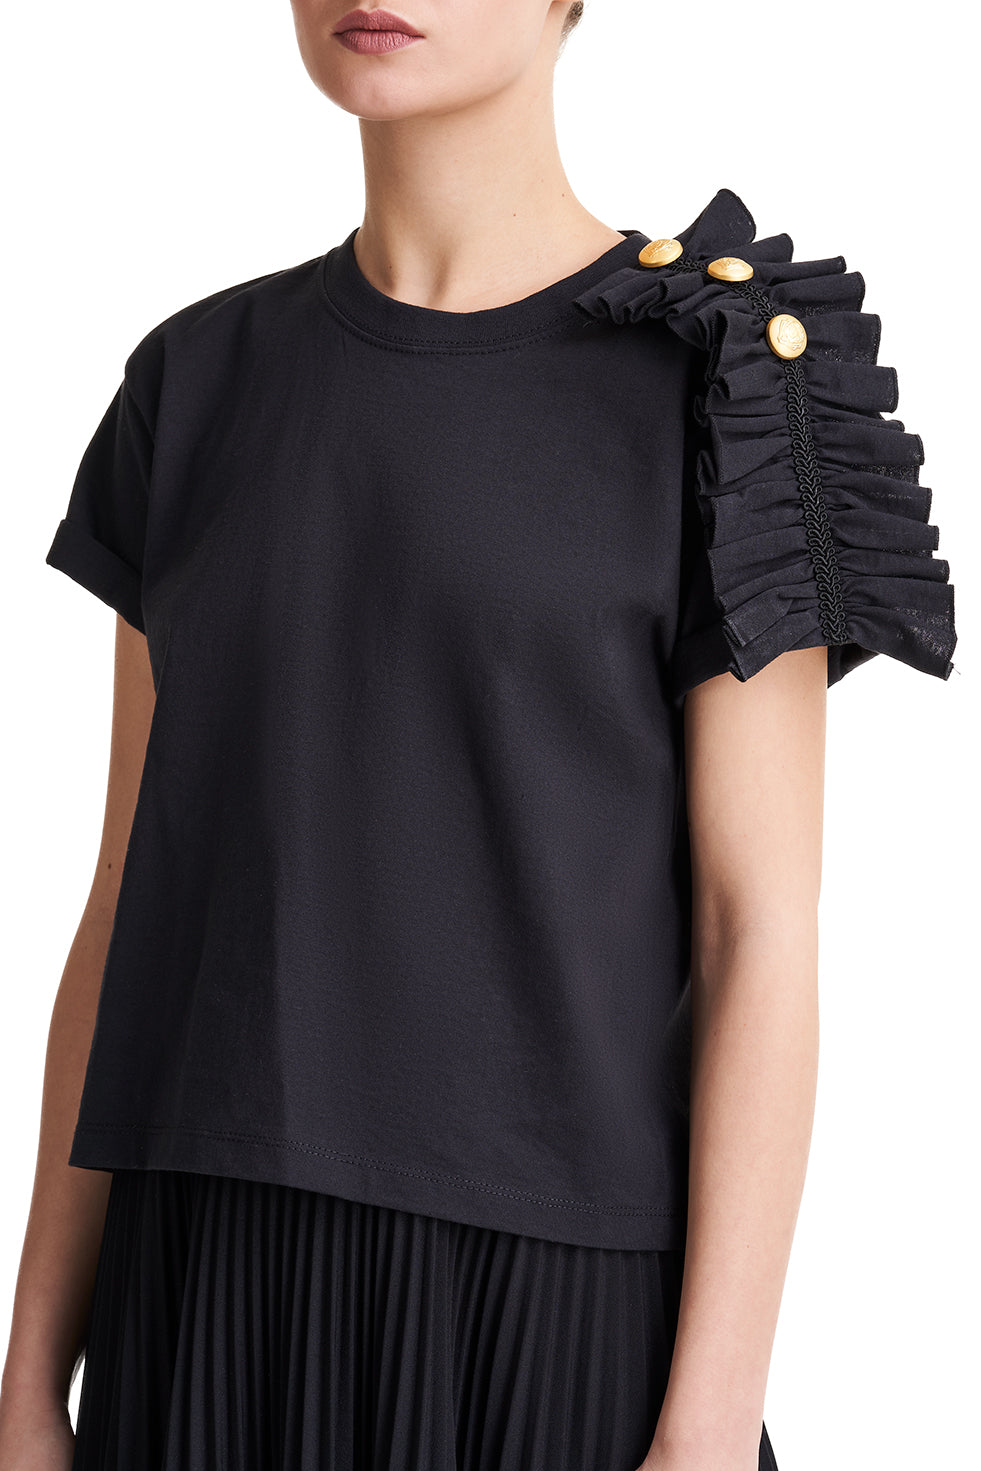 Valerie Black Frill Top